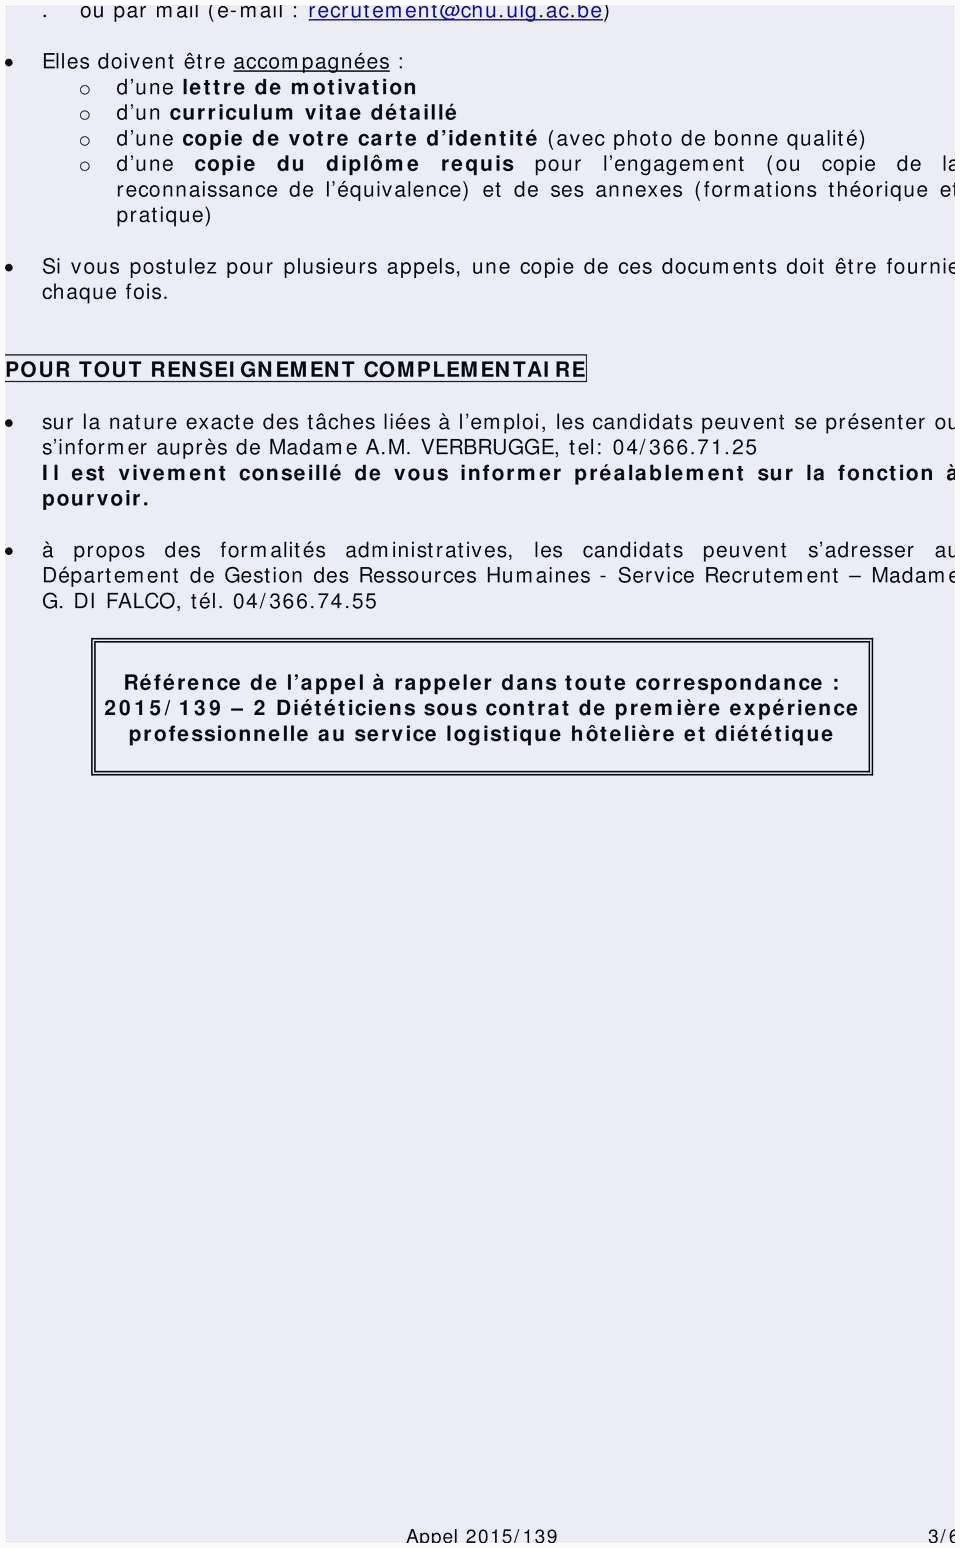 Lettre De Motivation Stage 2nd Bac Pro merce Frisch Lettre De